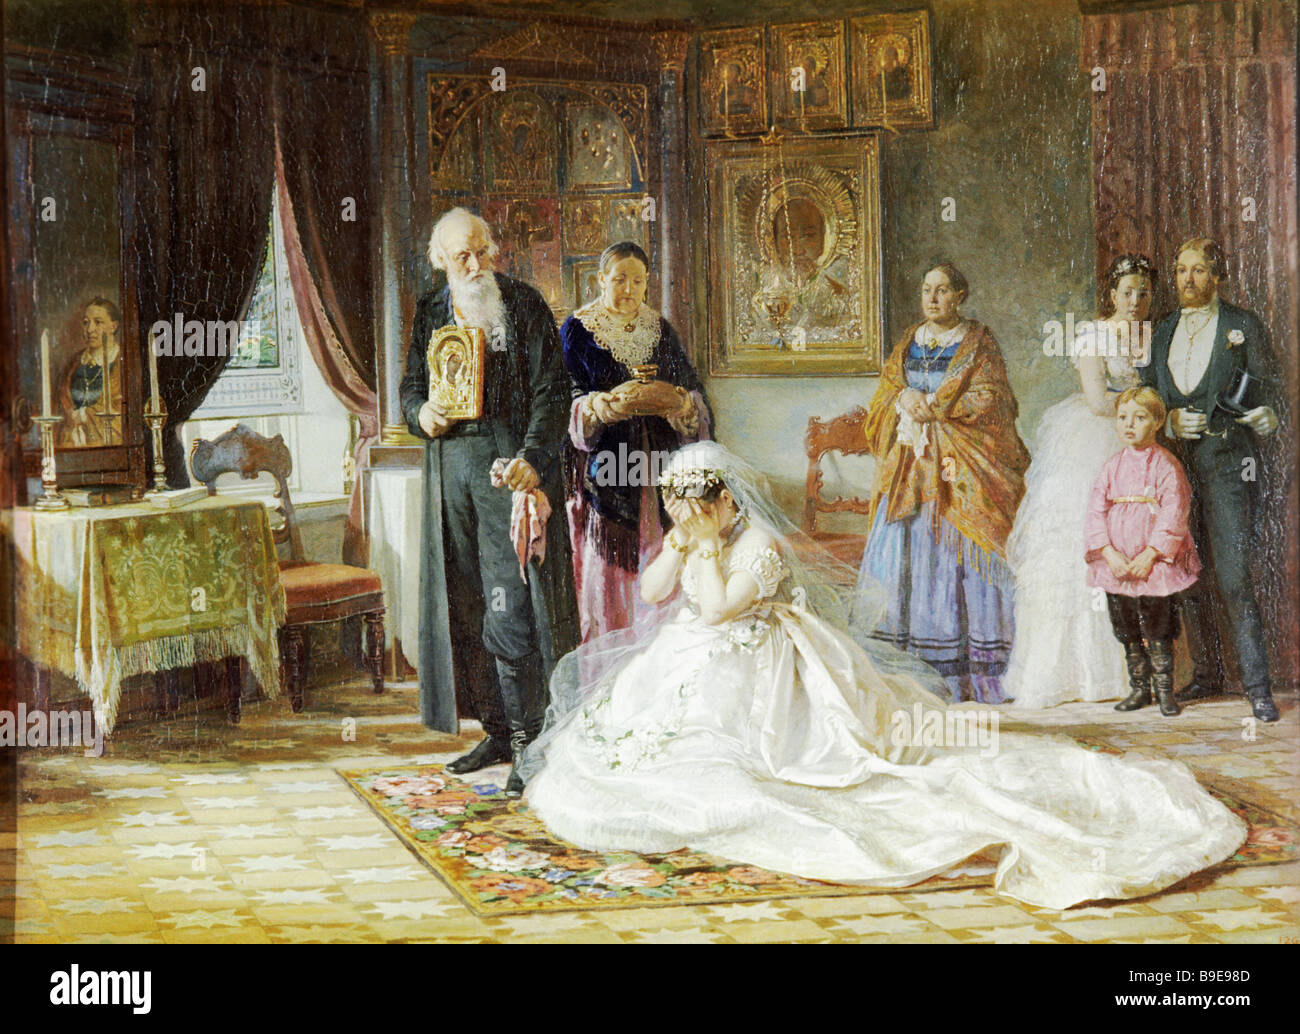 a reproduction of the painting before the wedding 1874 by fris zhuravlyov 1836 1901 from the collection of the state russian